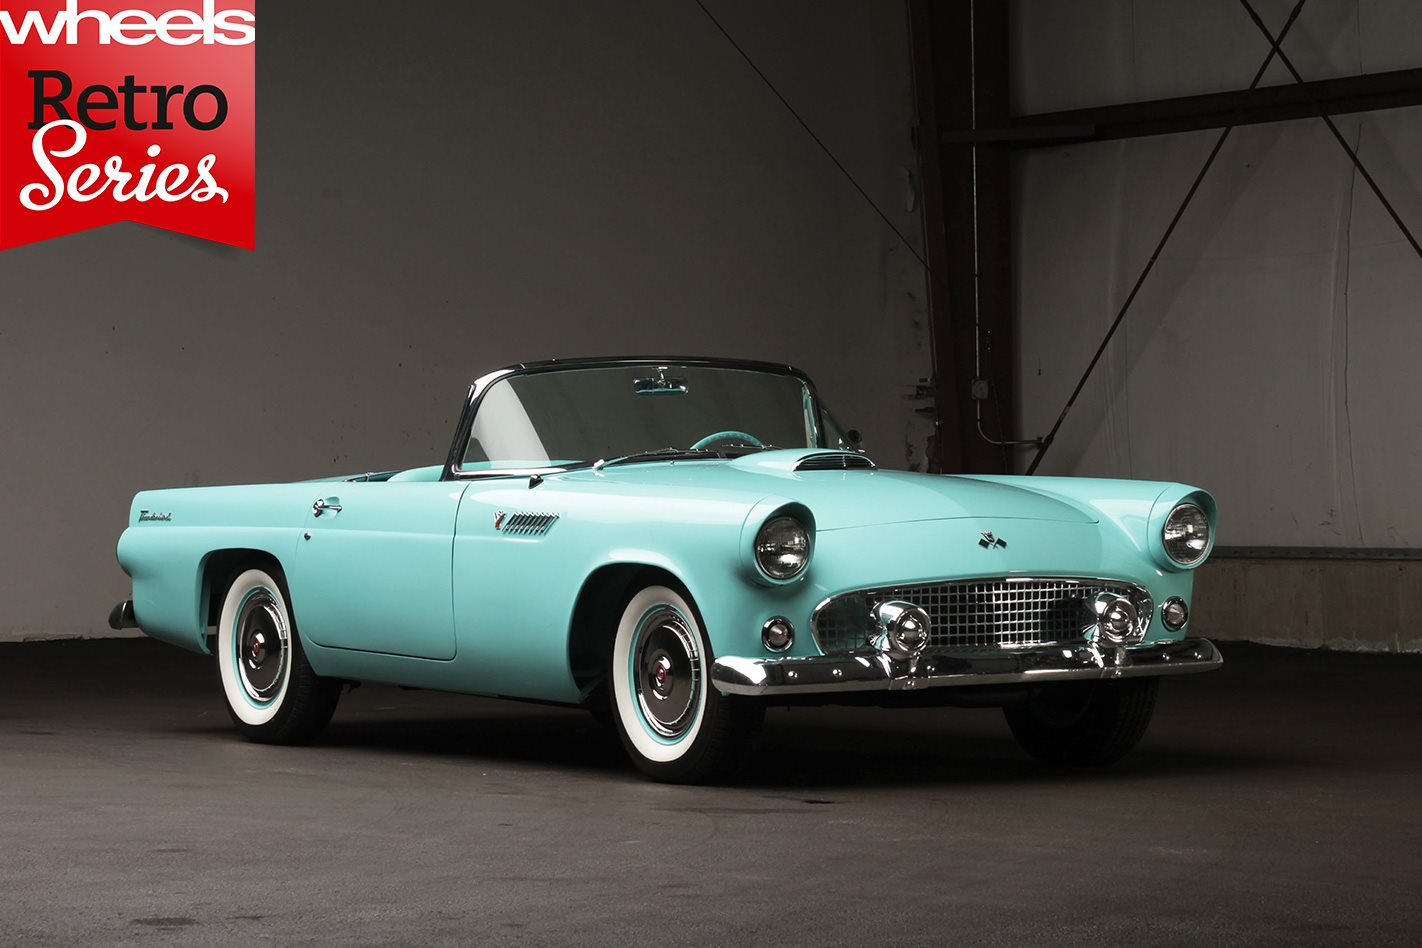 1954 Ford Thunderbird Retro Series Cars For Sale